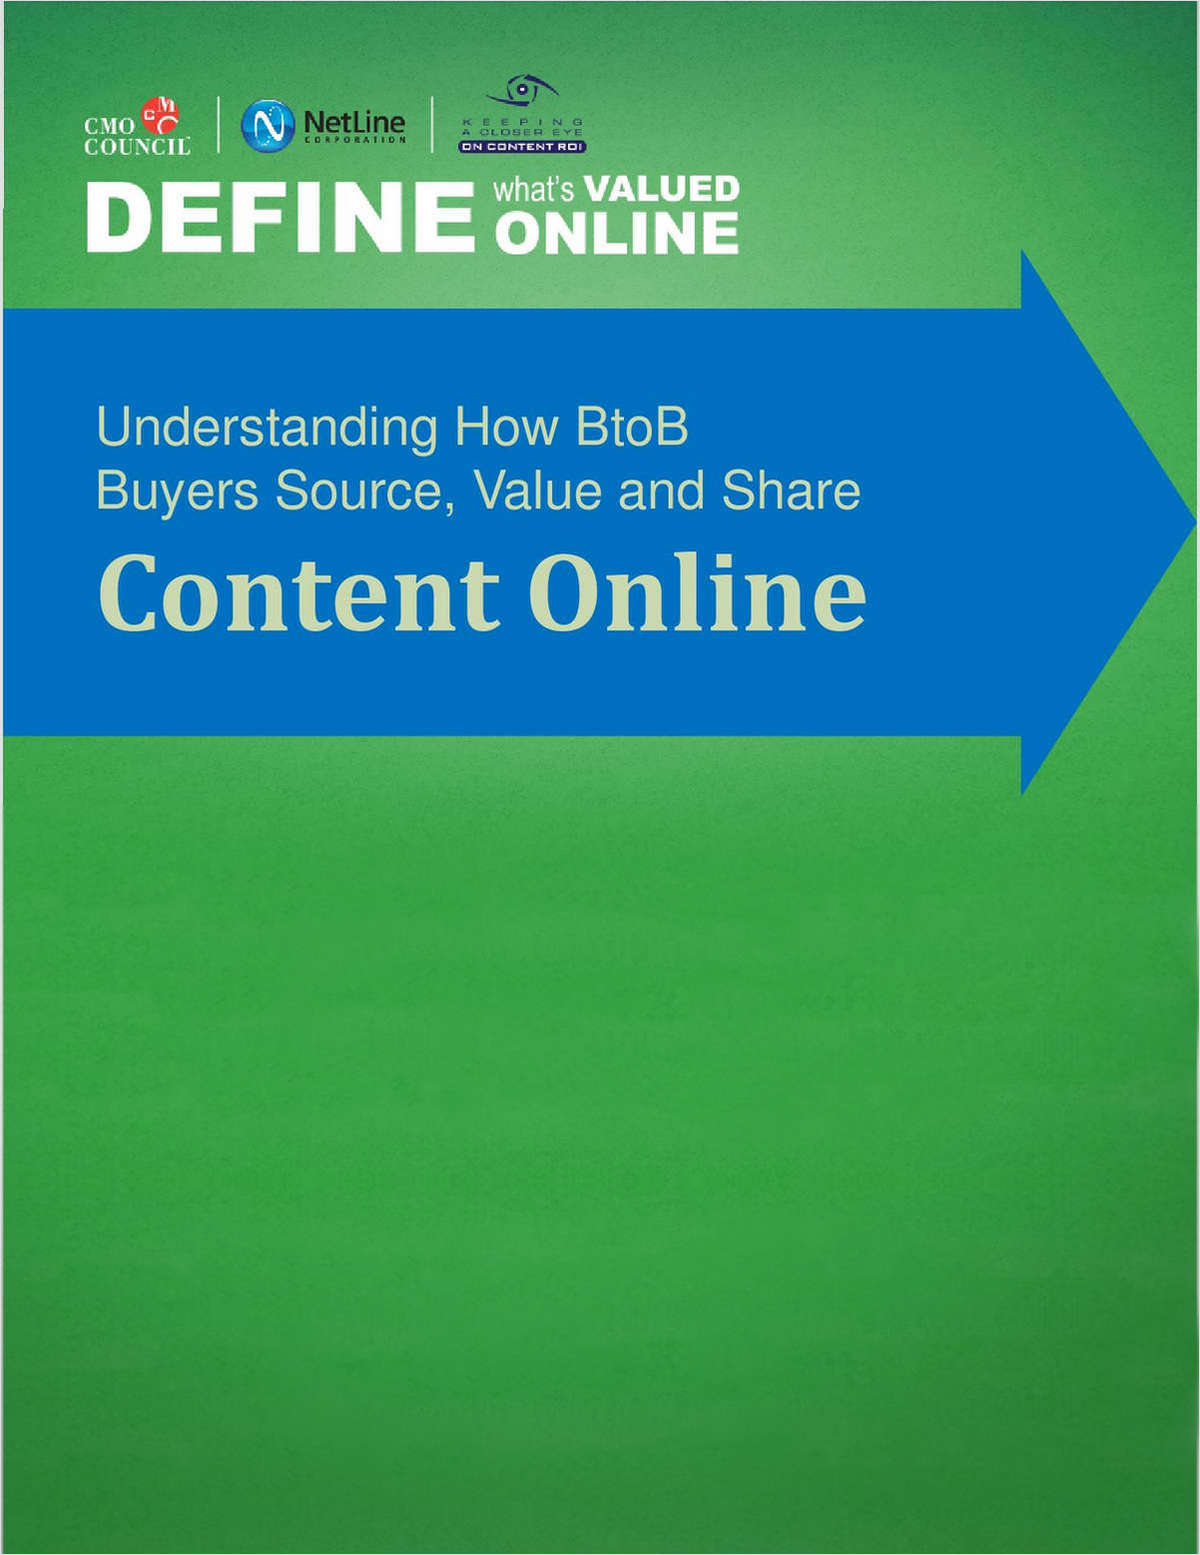 Define What's Valued Online: Understanding How BtoB Buyers Source, Value and Share Content Online